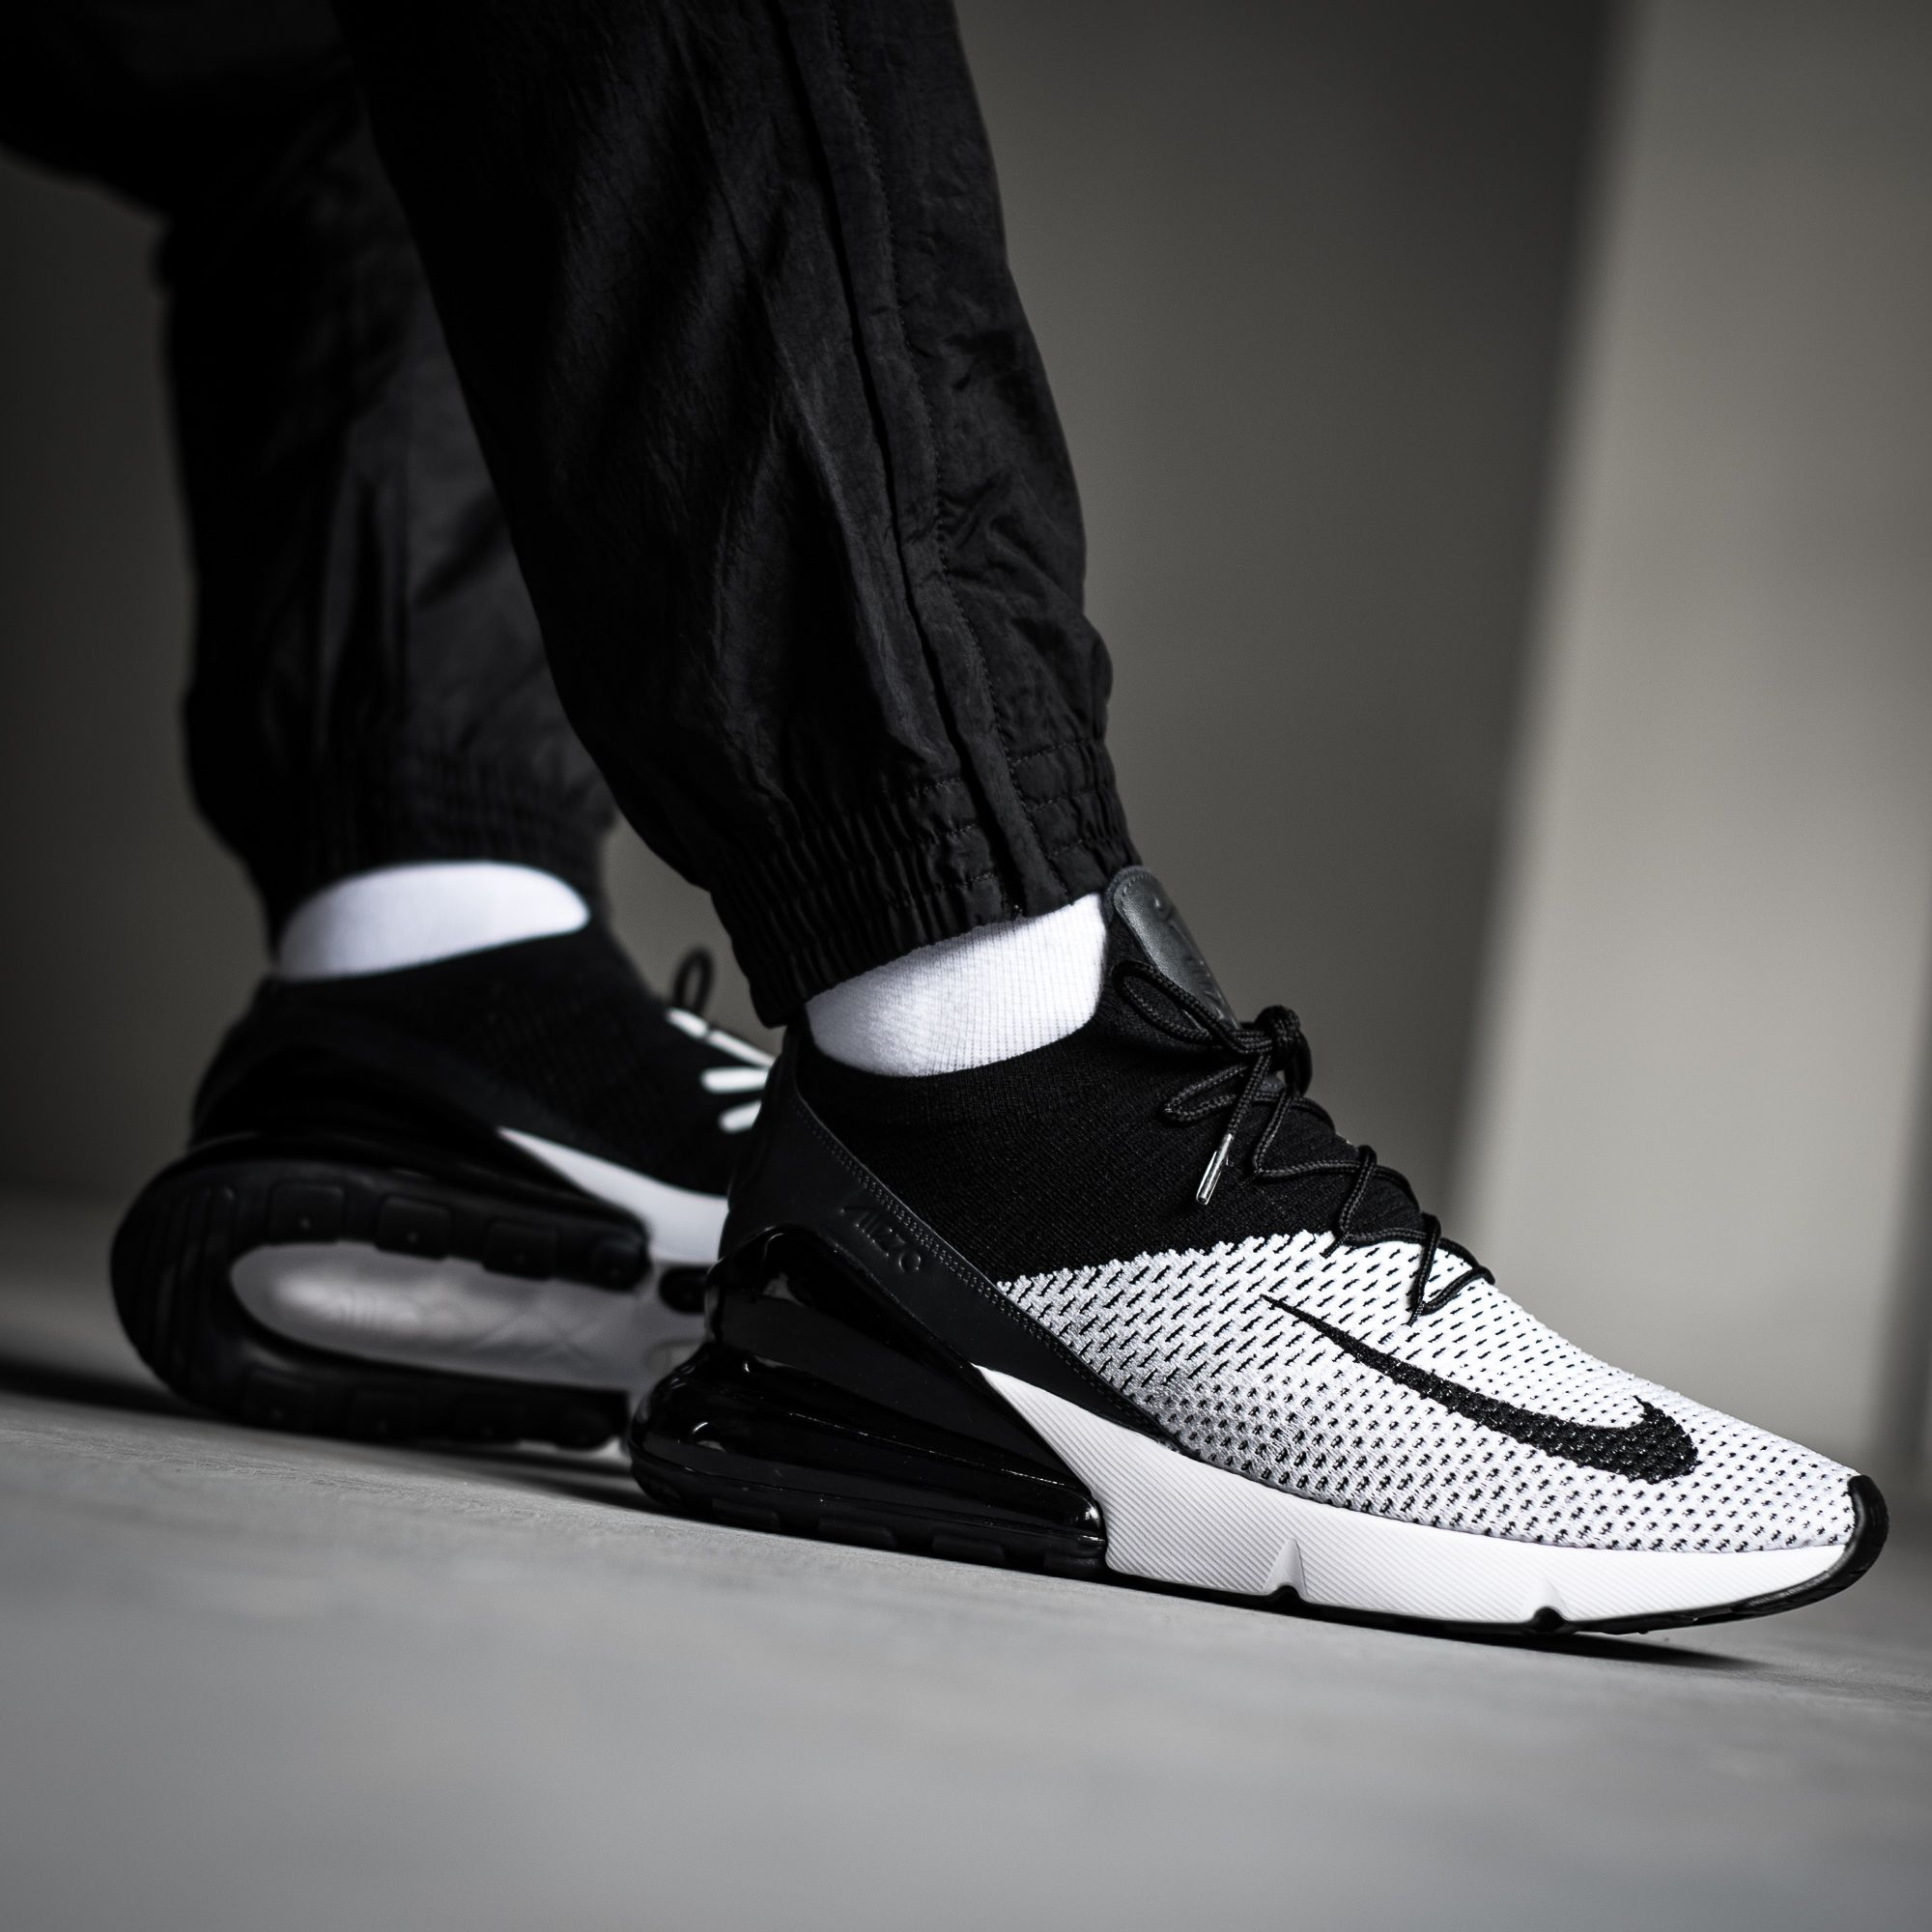 93fe4955e03 The brand-new NIKE AIR MAX 270 FLYKNIT in a white black-anthracite  colorway! Get yours on kickz.com!